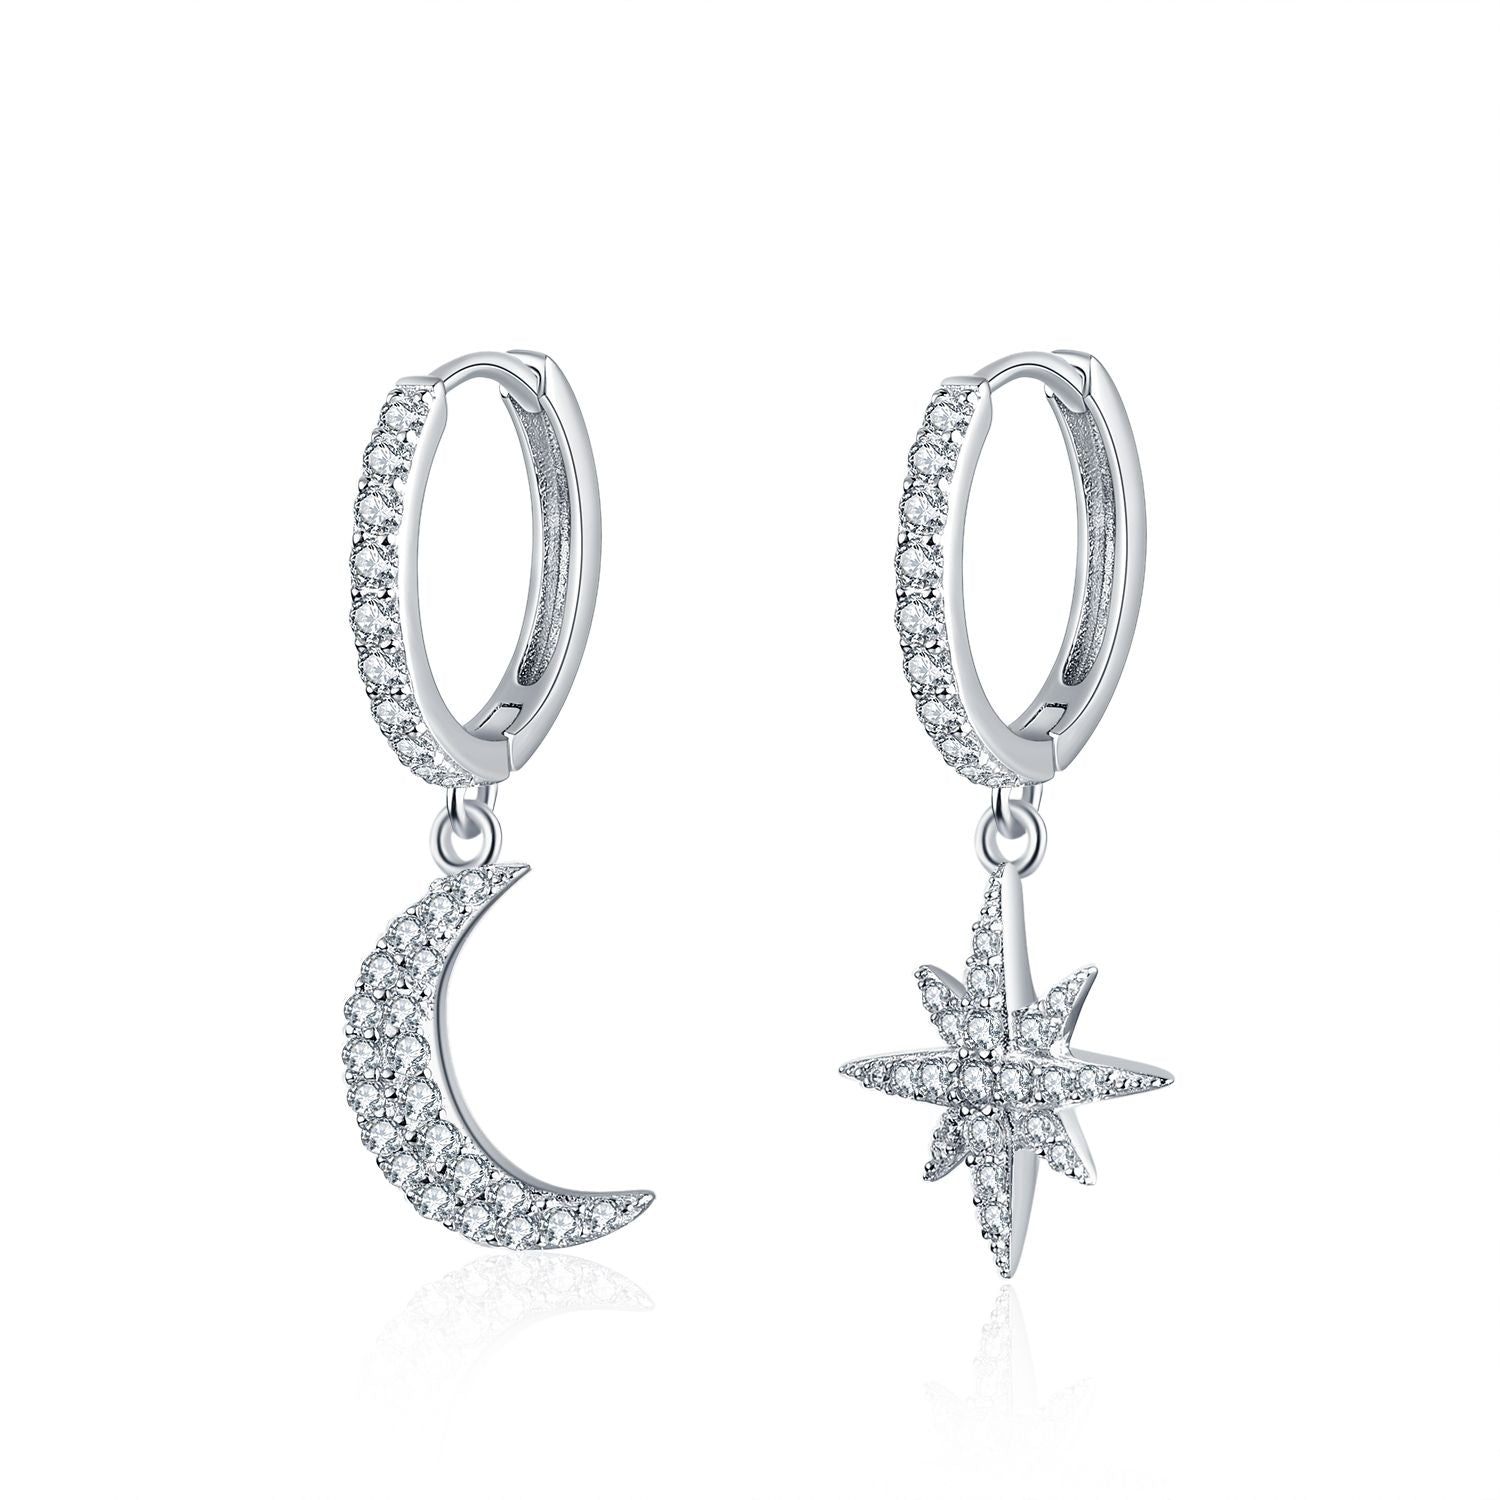 925 sterling silver moon and stars fashion earrings - onlyone